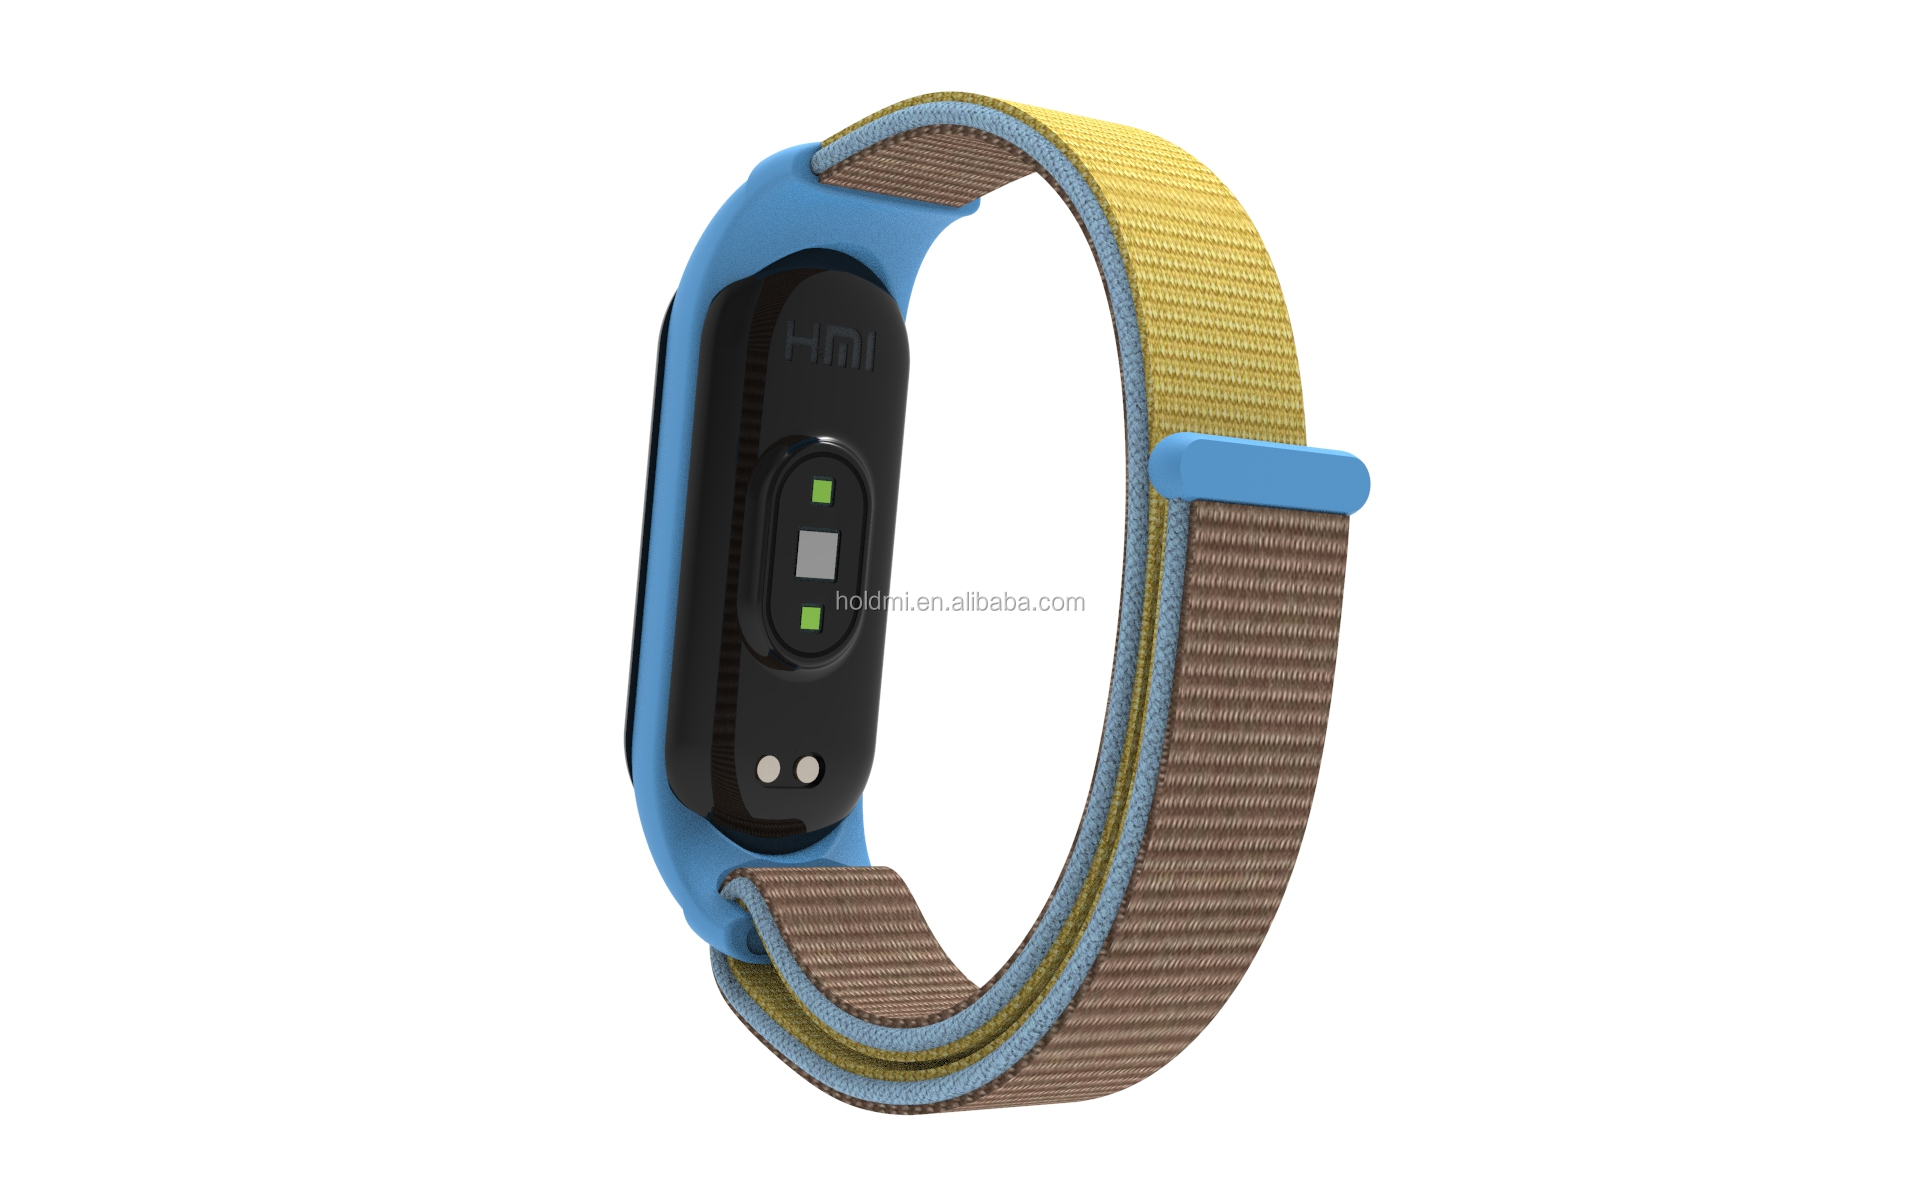 ODM holdmi new 5311 series 36 colors replacement nylon mi band 5 strap for mi band 3 4 5